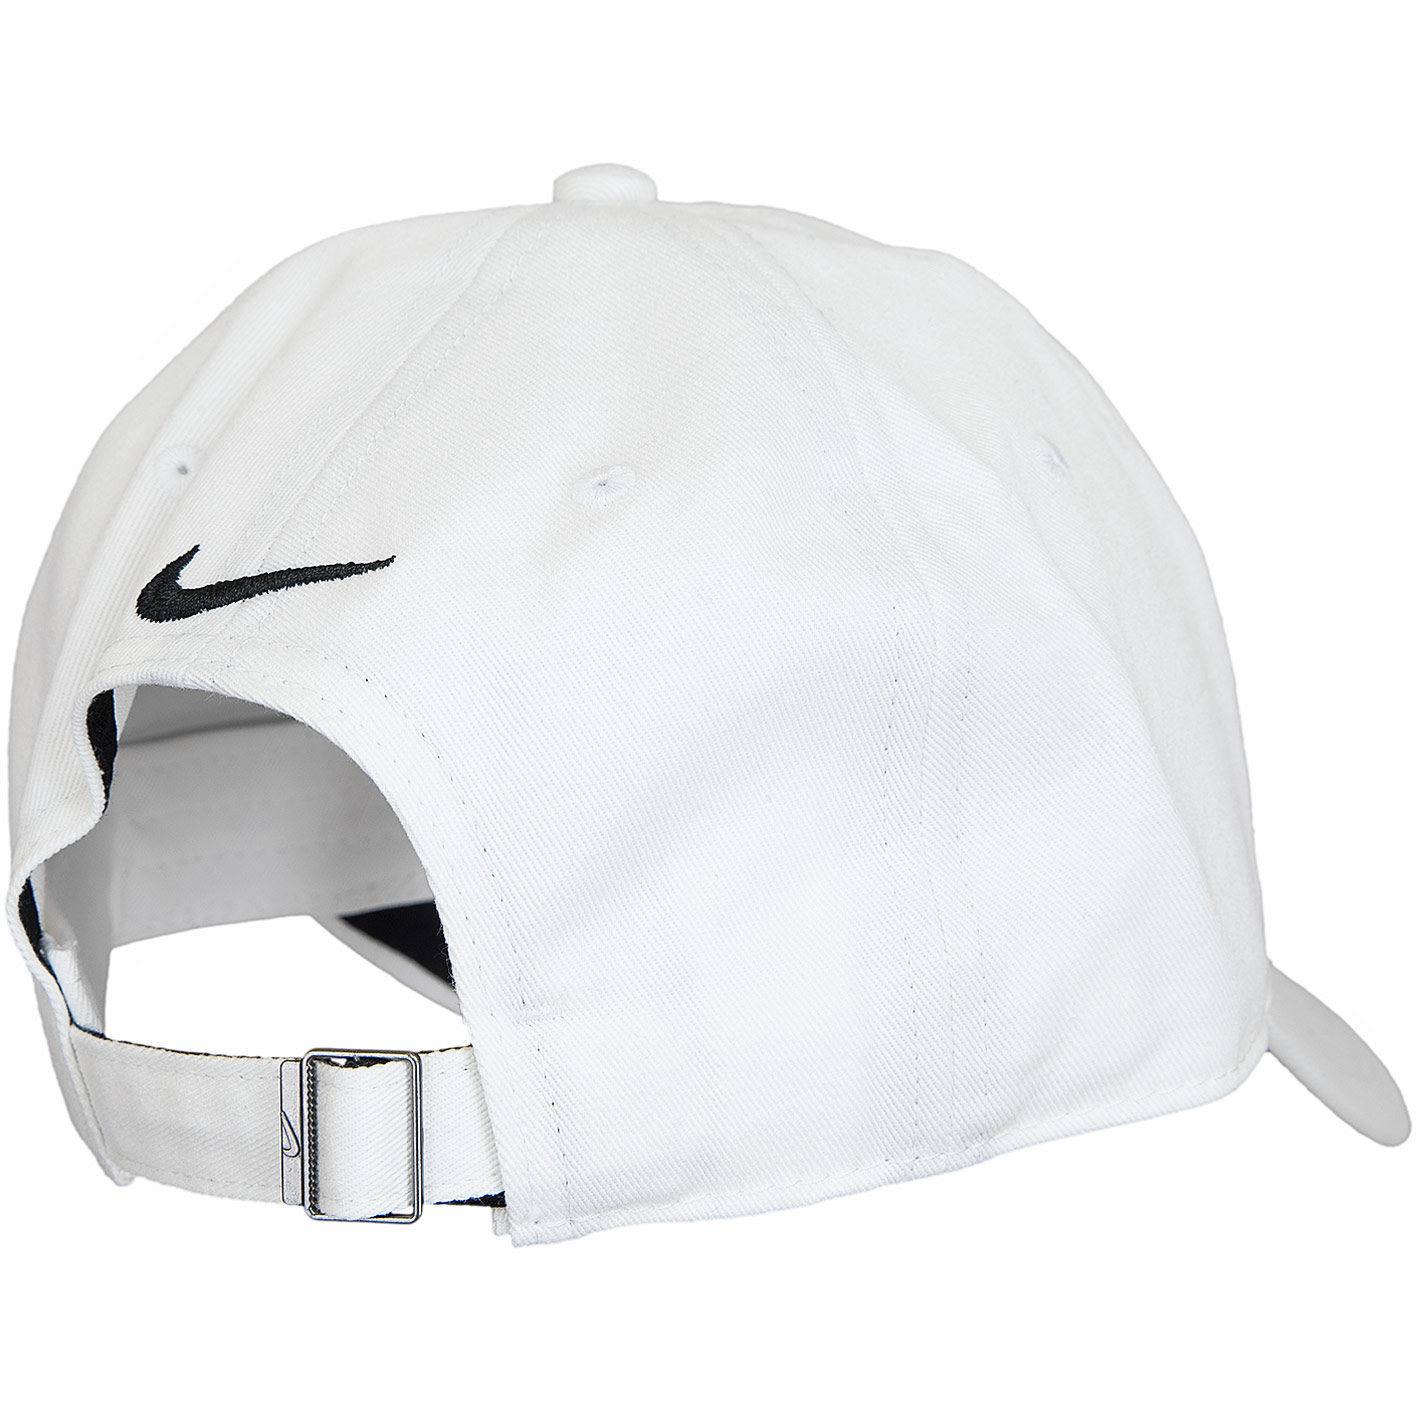 b2f433e89243c ☆ Nike Snapback Cap H86 Just Do It weiß/schwarz - hier bestellen!